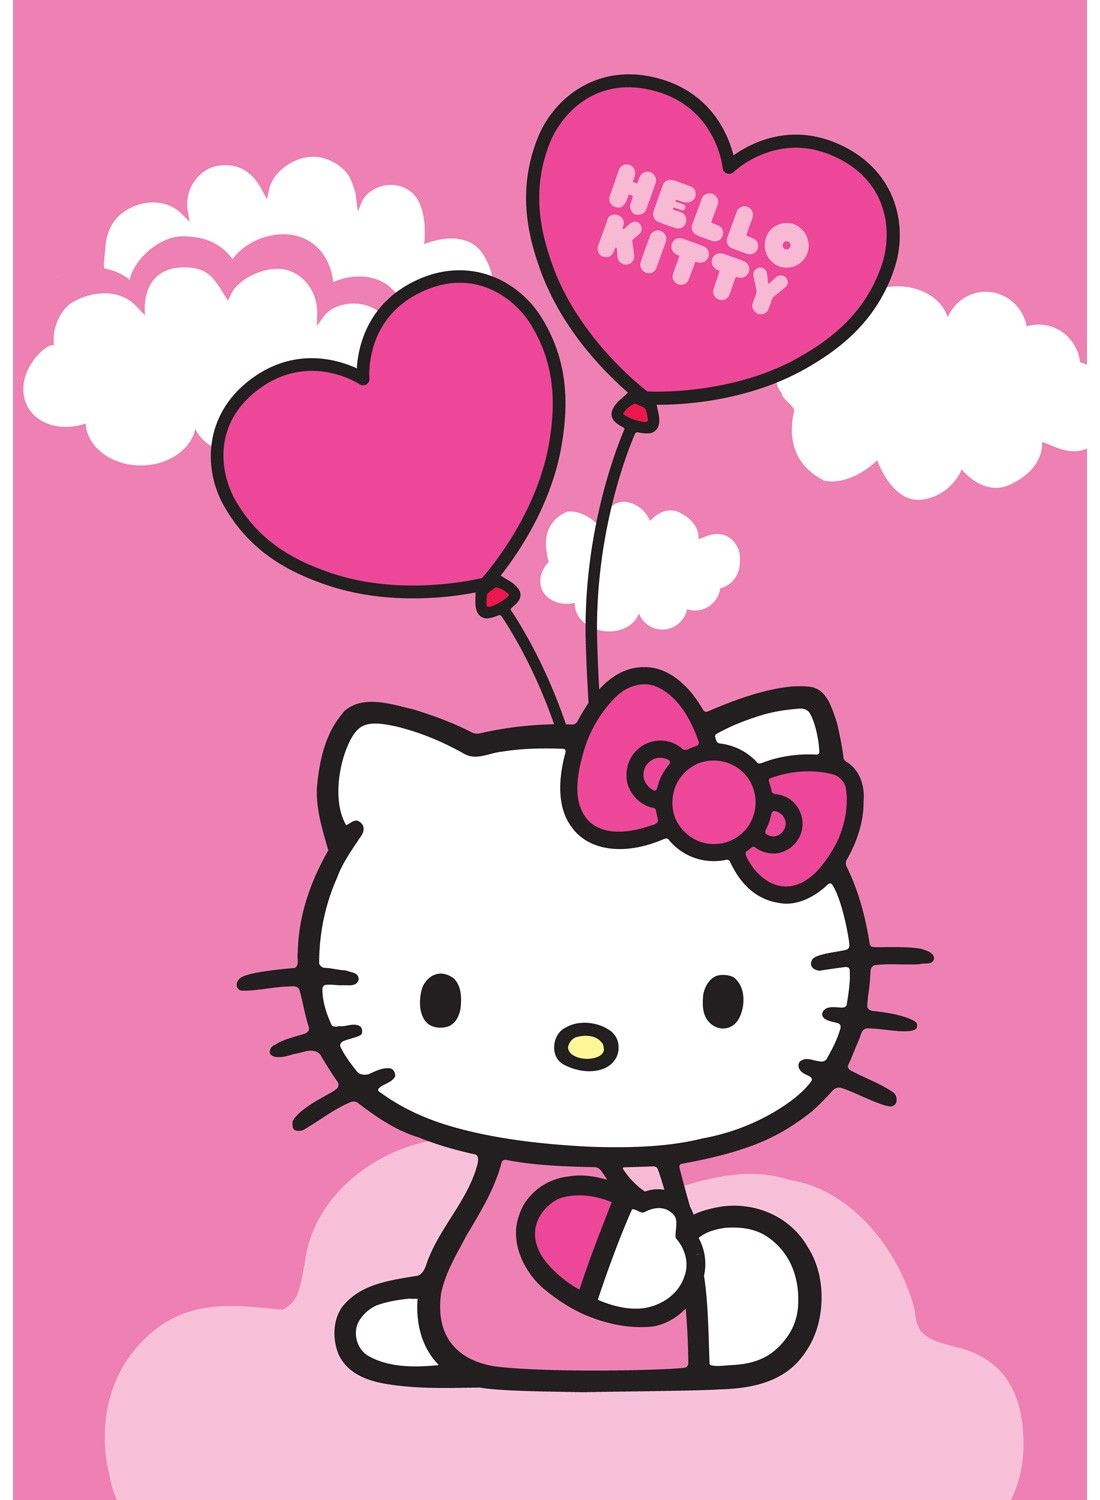 Chambre Enfant Fille Hello Kitty Idée Image Kitty Avec Ballon Anniversaire Hello Kitty